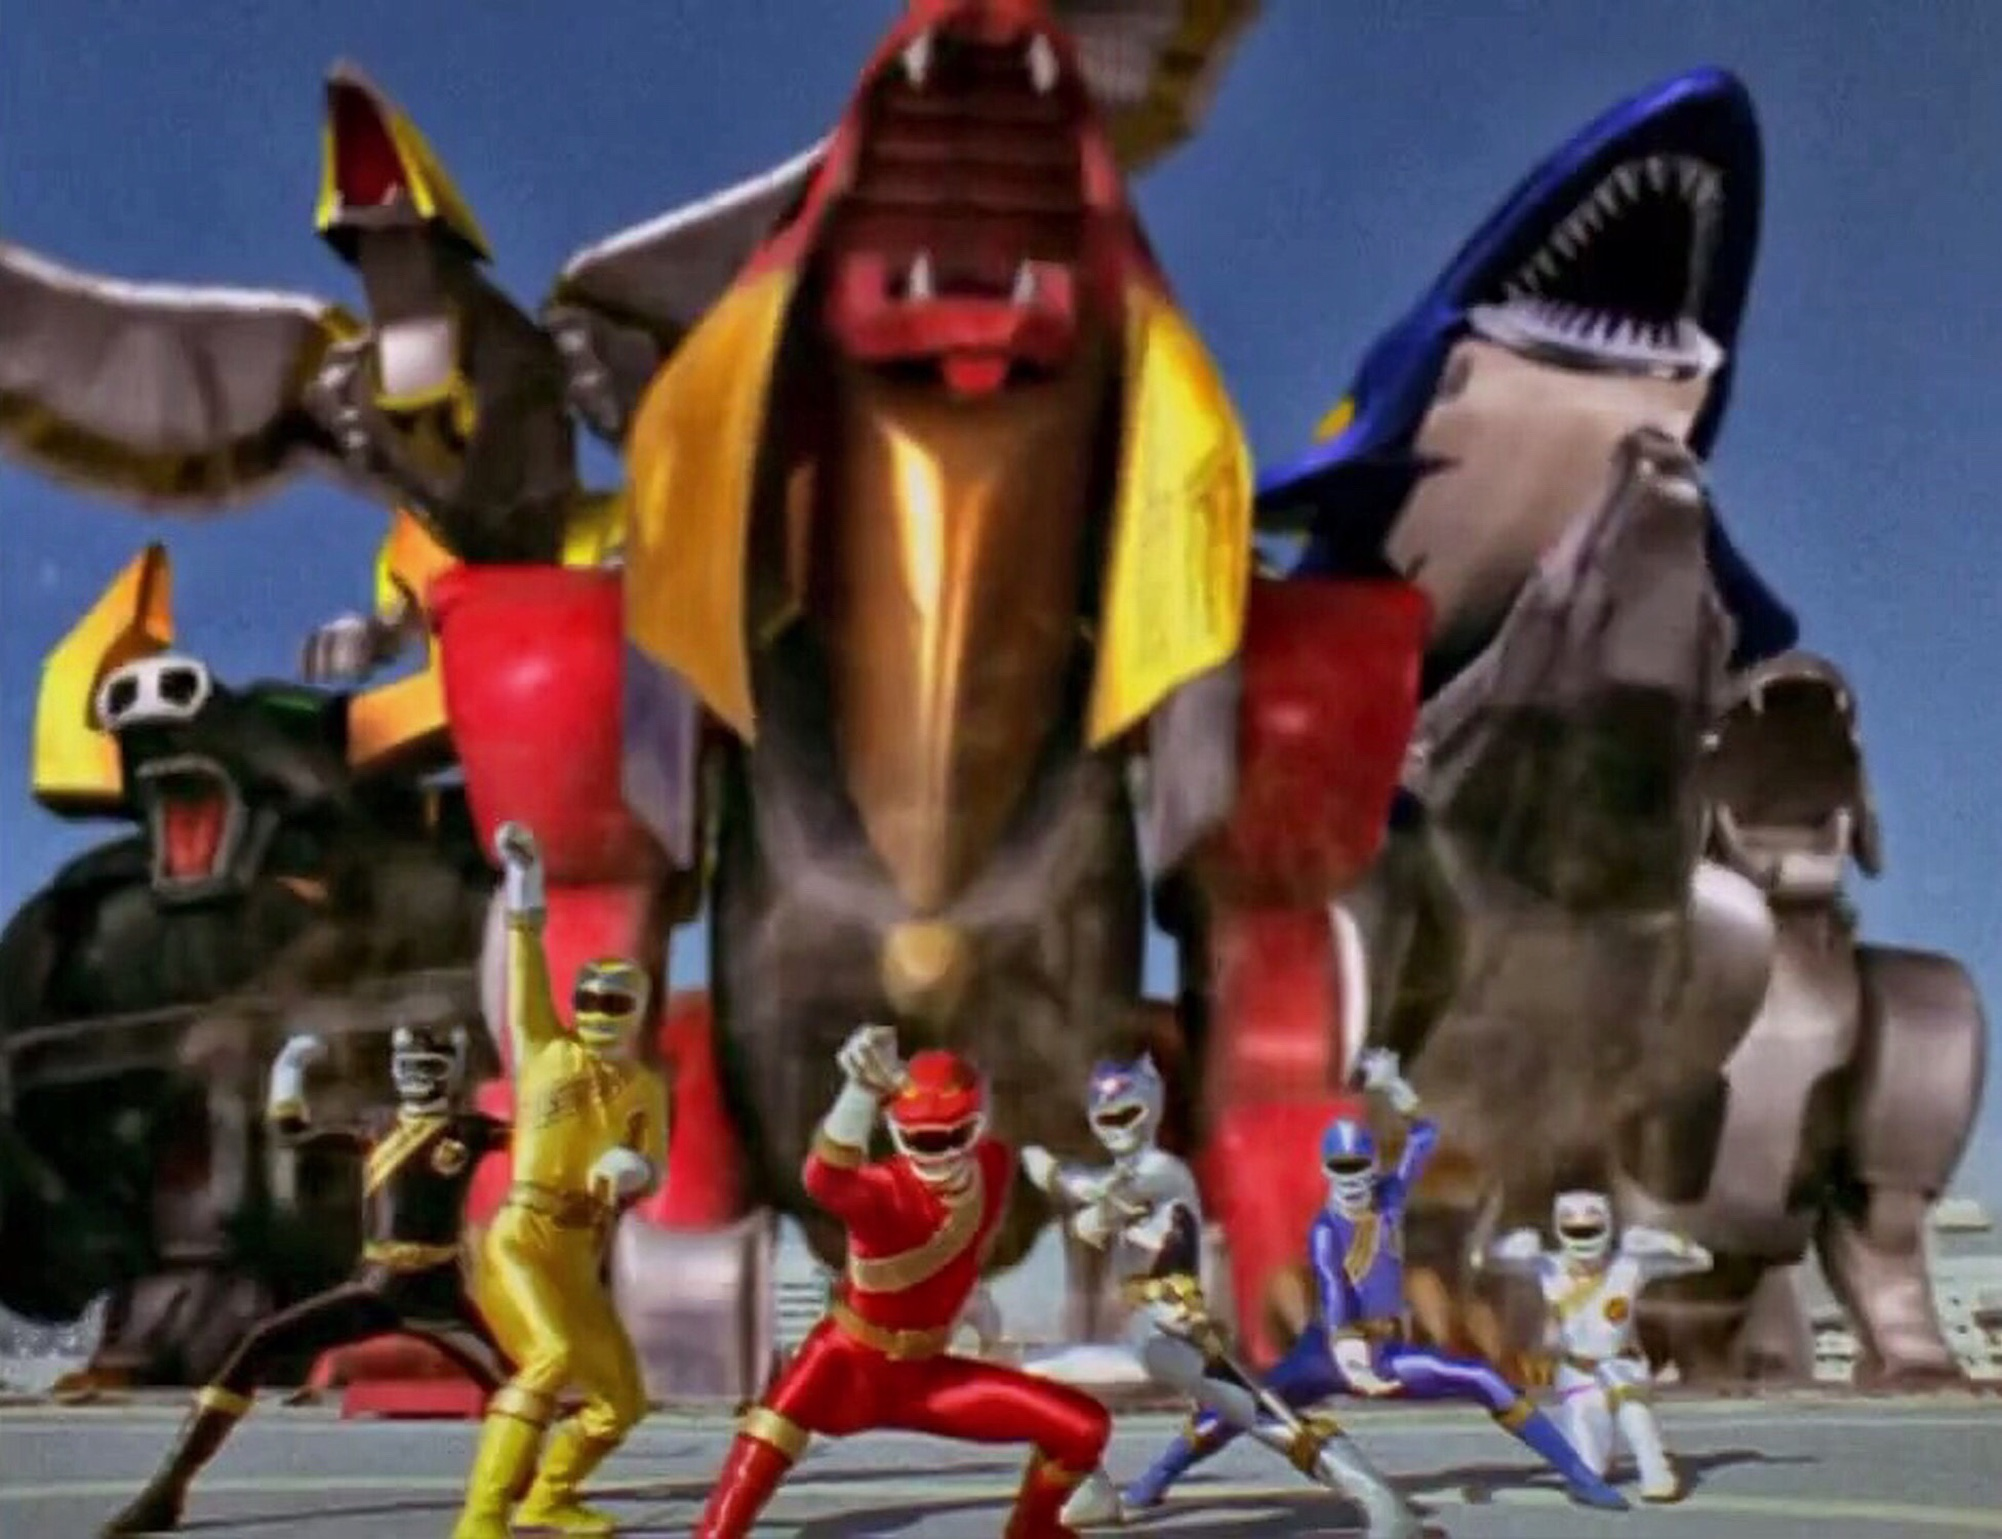 The End of the Power Rangers